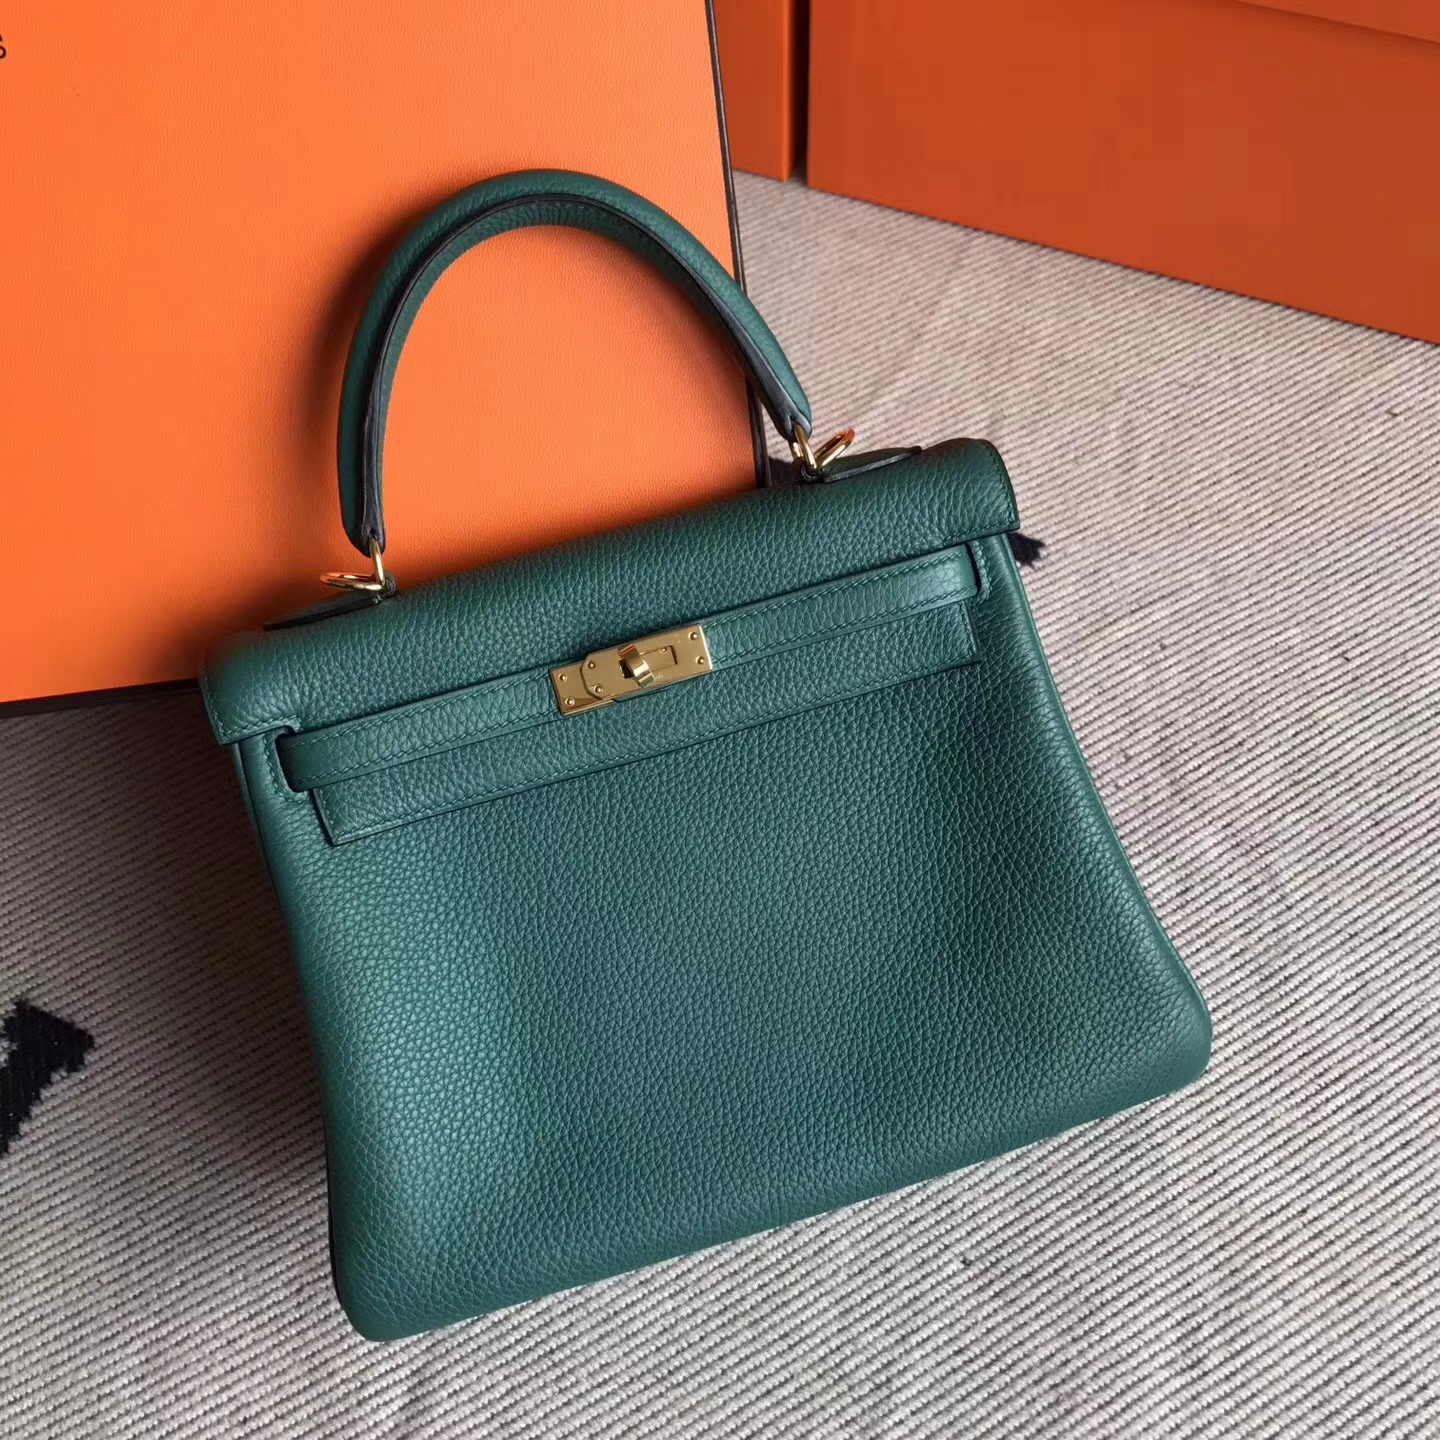 85aaad6a2779 Brand  Hermes  Style  Retourne Kelly Bag  Material  Togo Calfskin Leather   Color  Z6 Malachite Green  Size 25cm  Hardware  Gold  Accessories  Padlock  and ...